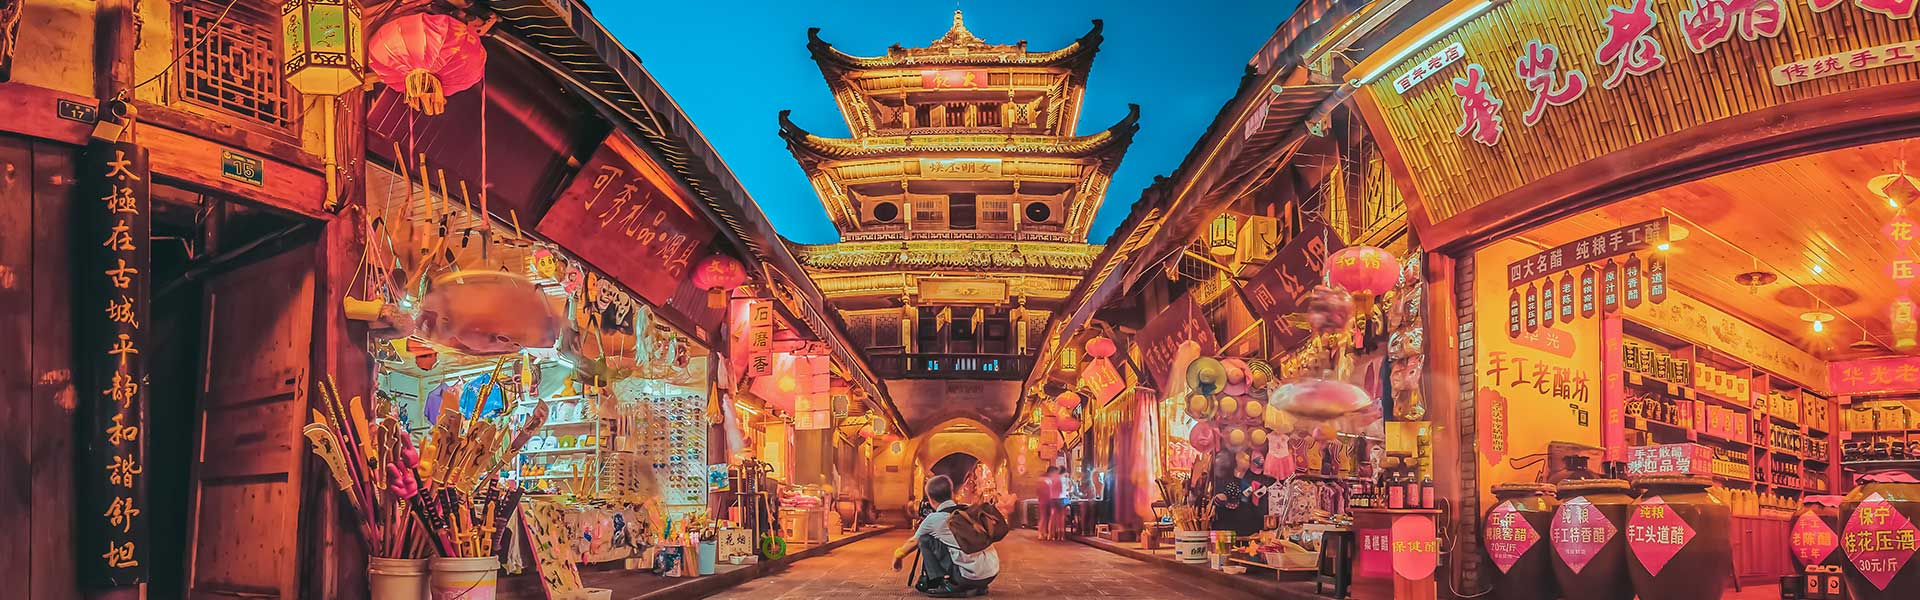 Top China Travel Destinations Top Tourist Destinations In China